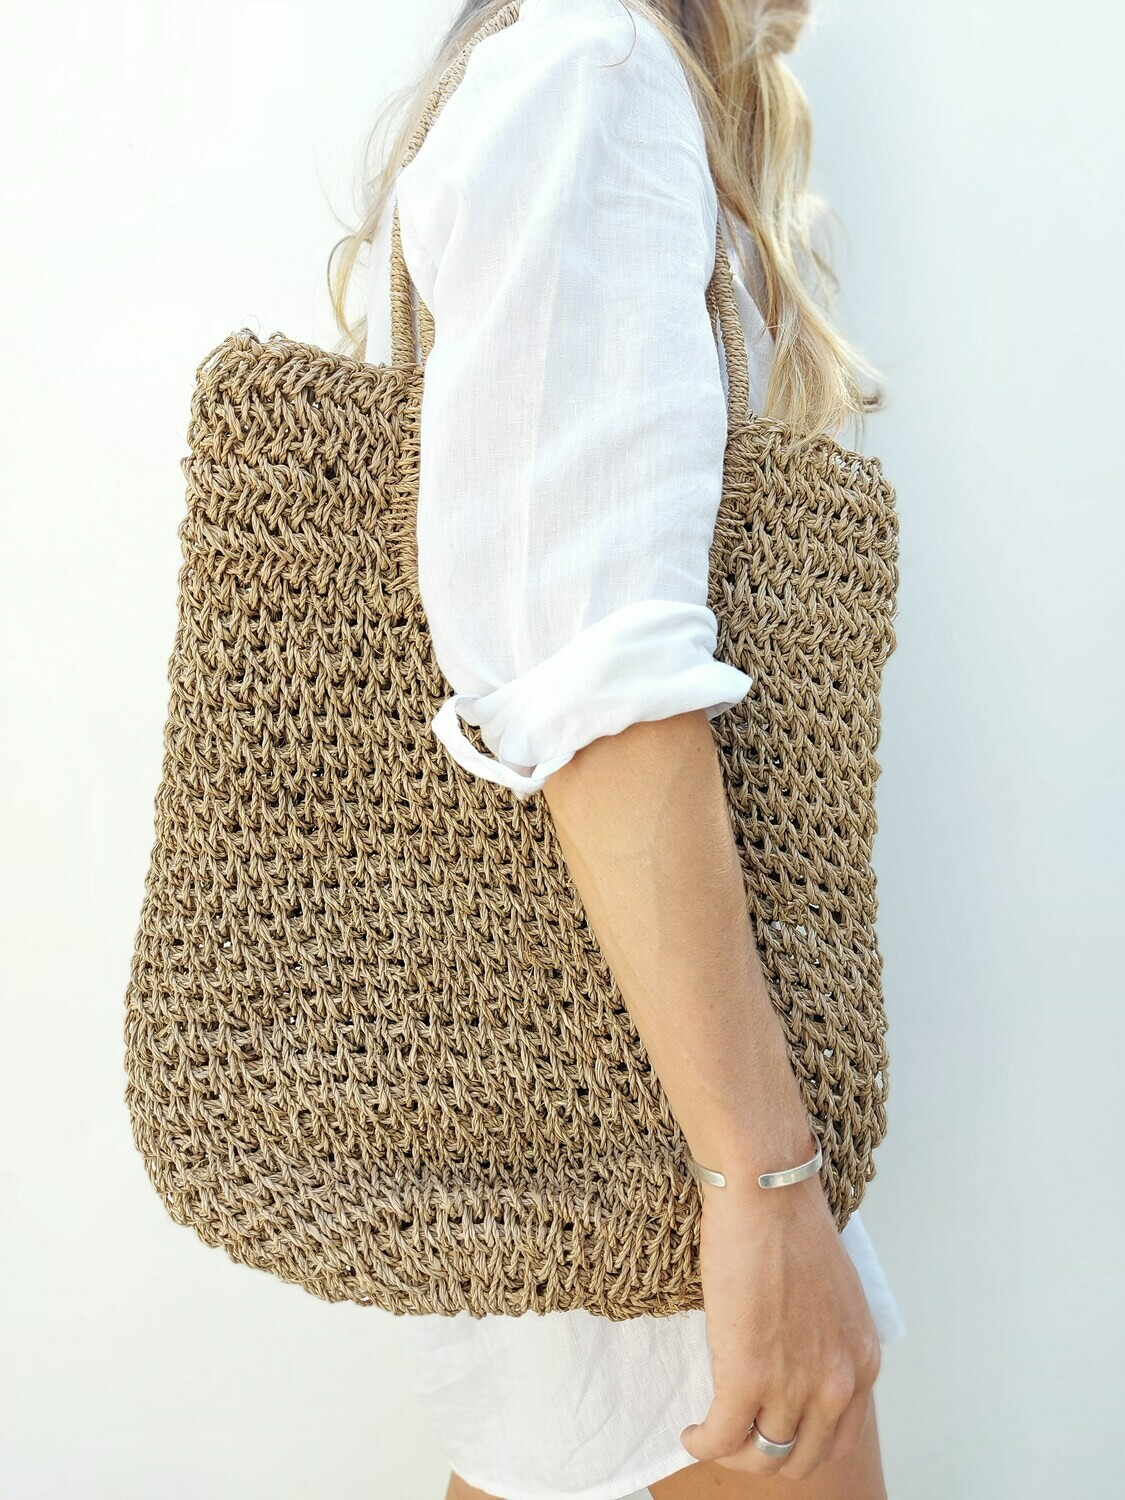 Handmade shopping bag from water hyacinth